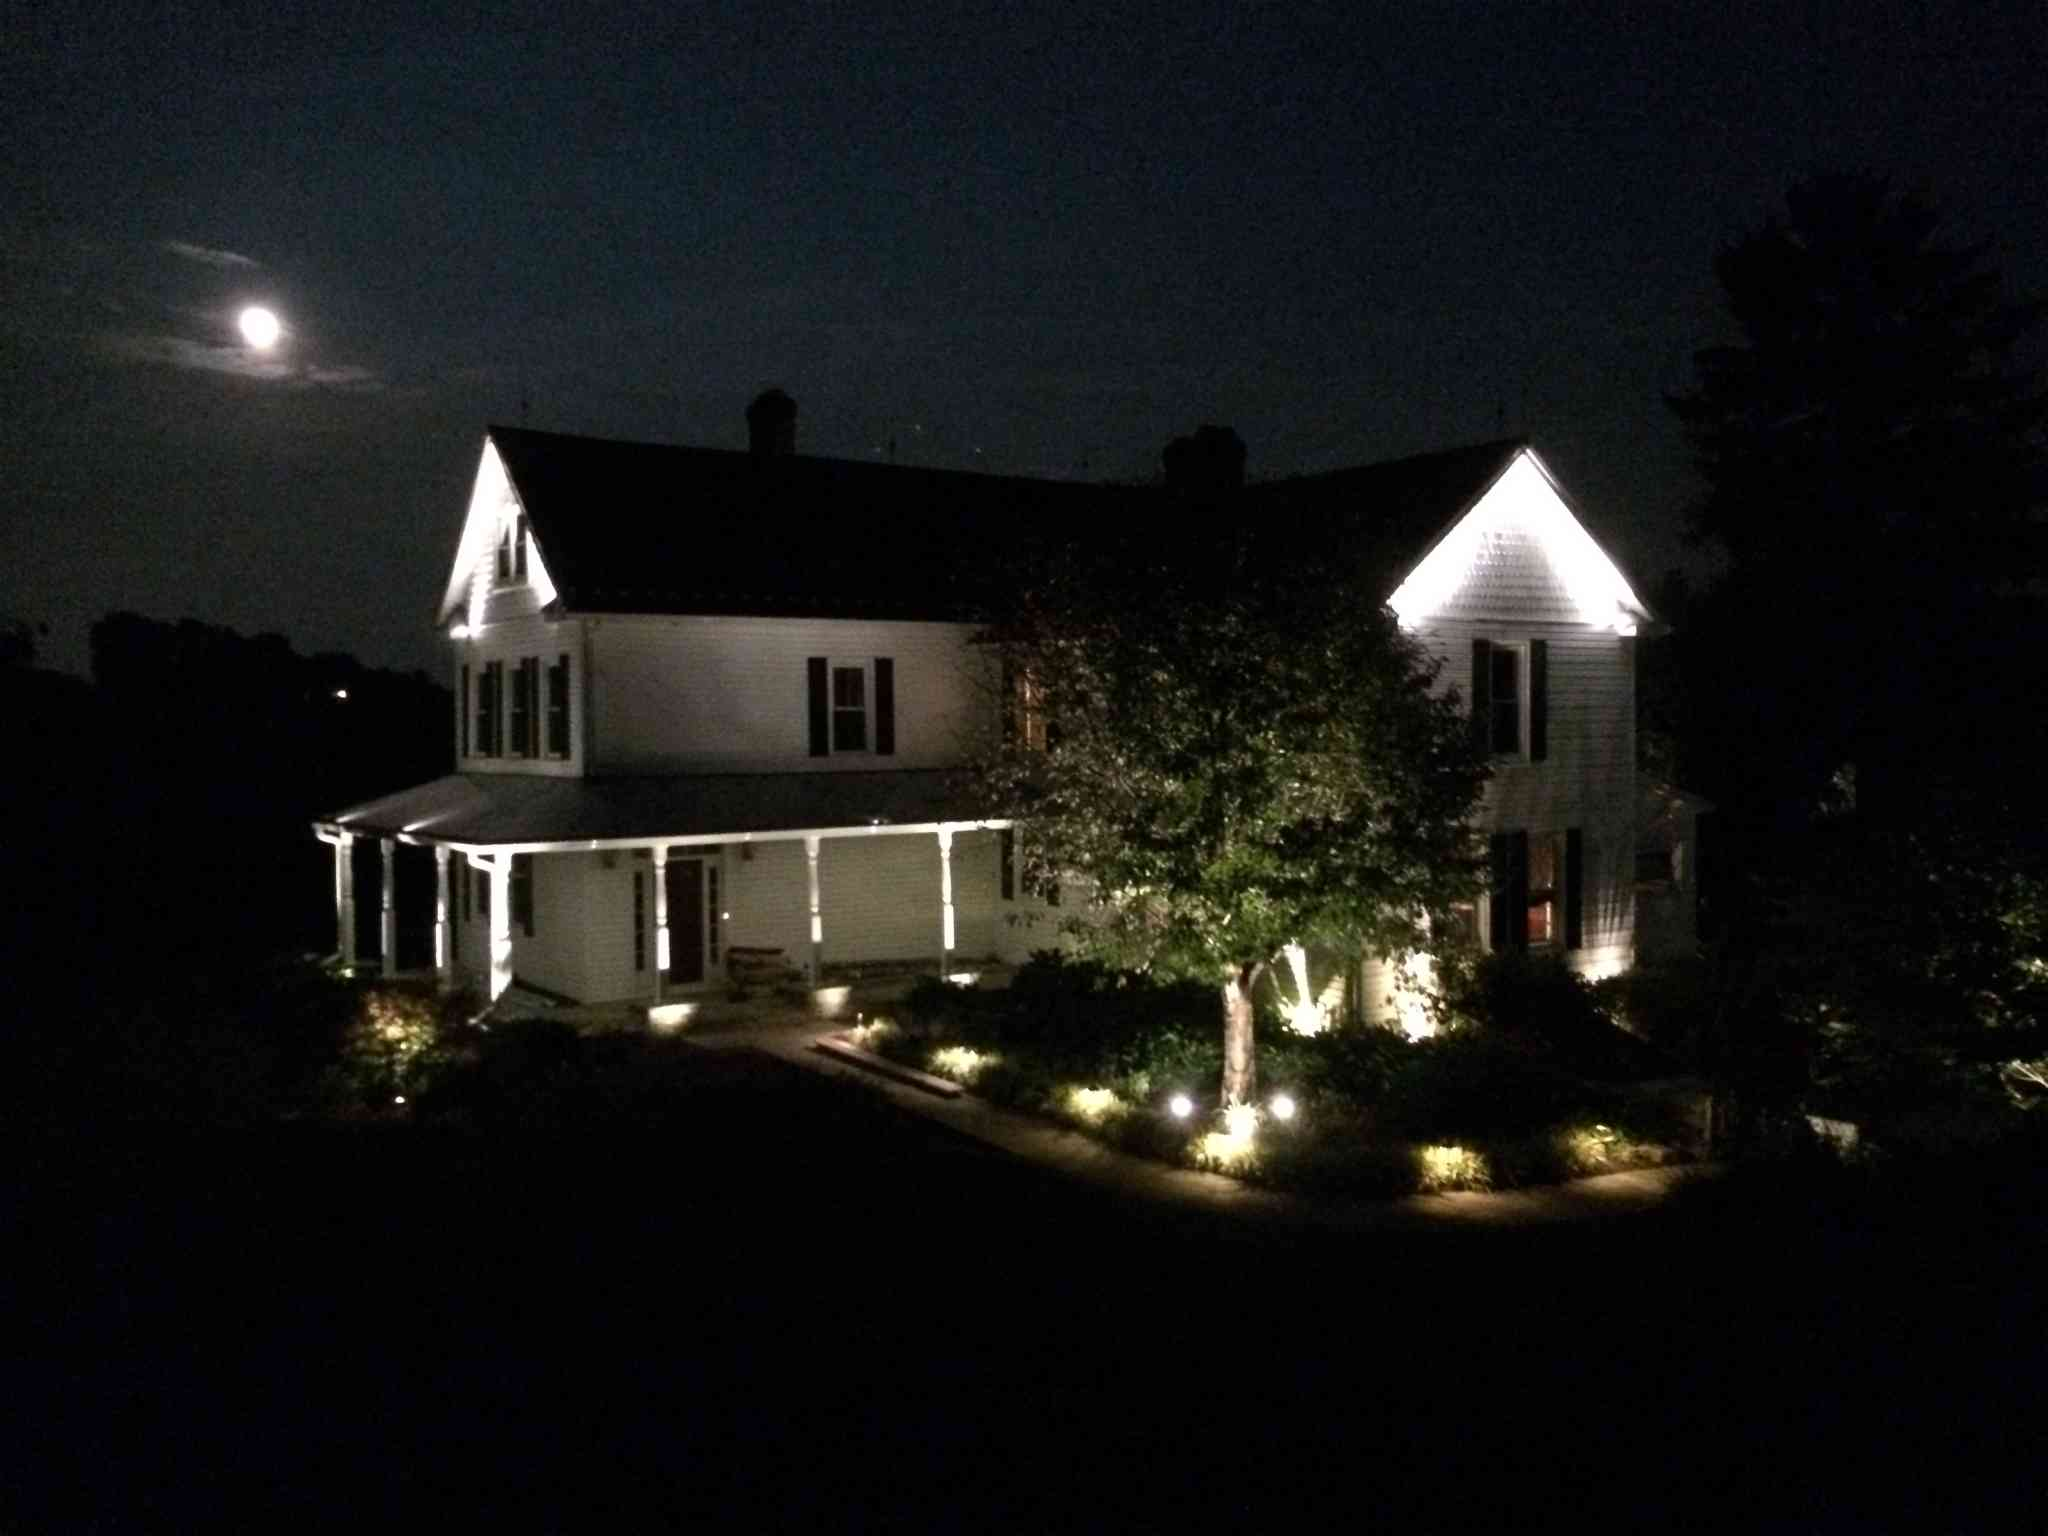 outdoor lighting tips to increase curb appeal aqua bright